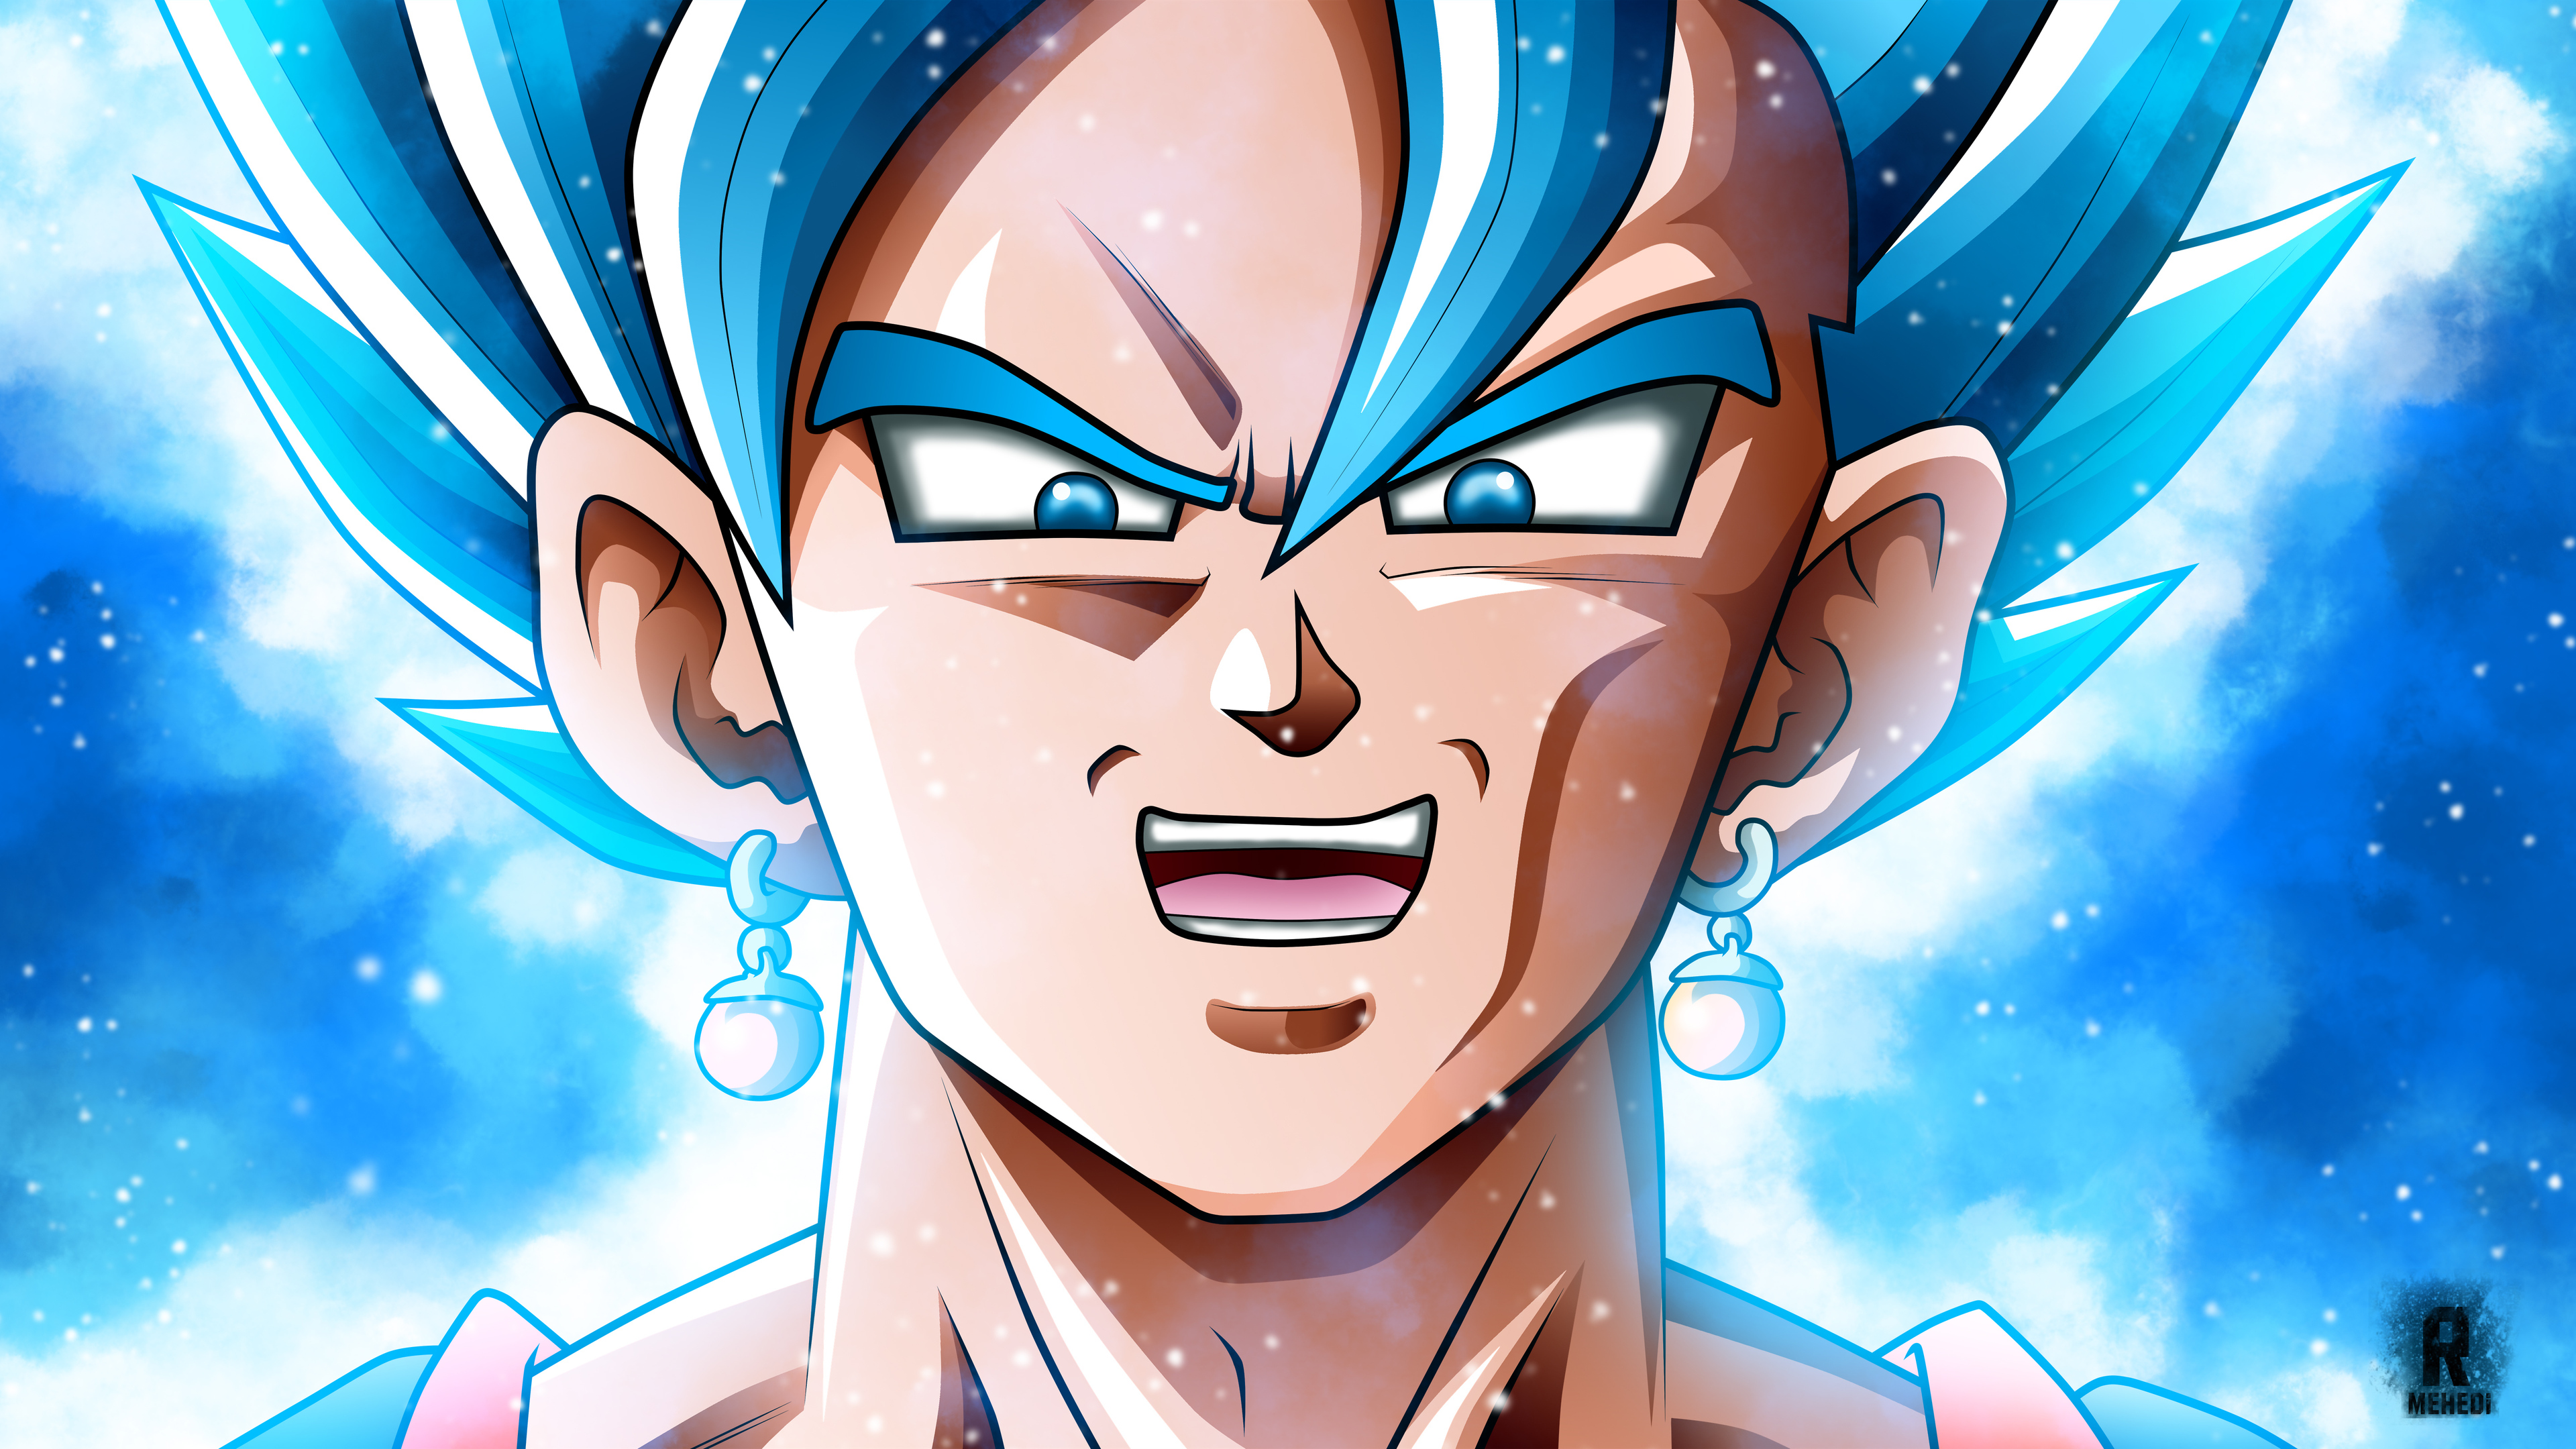 dragon-ball-super-saiyajin-blue-5k-nq.jpg